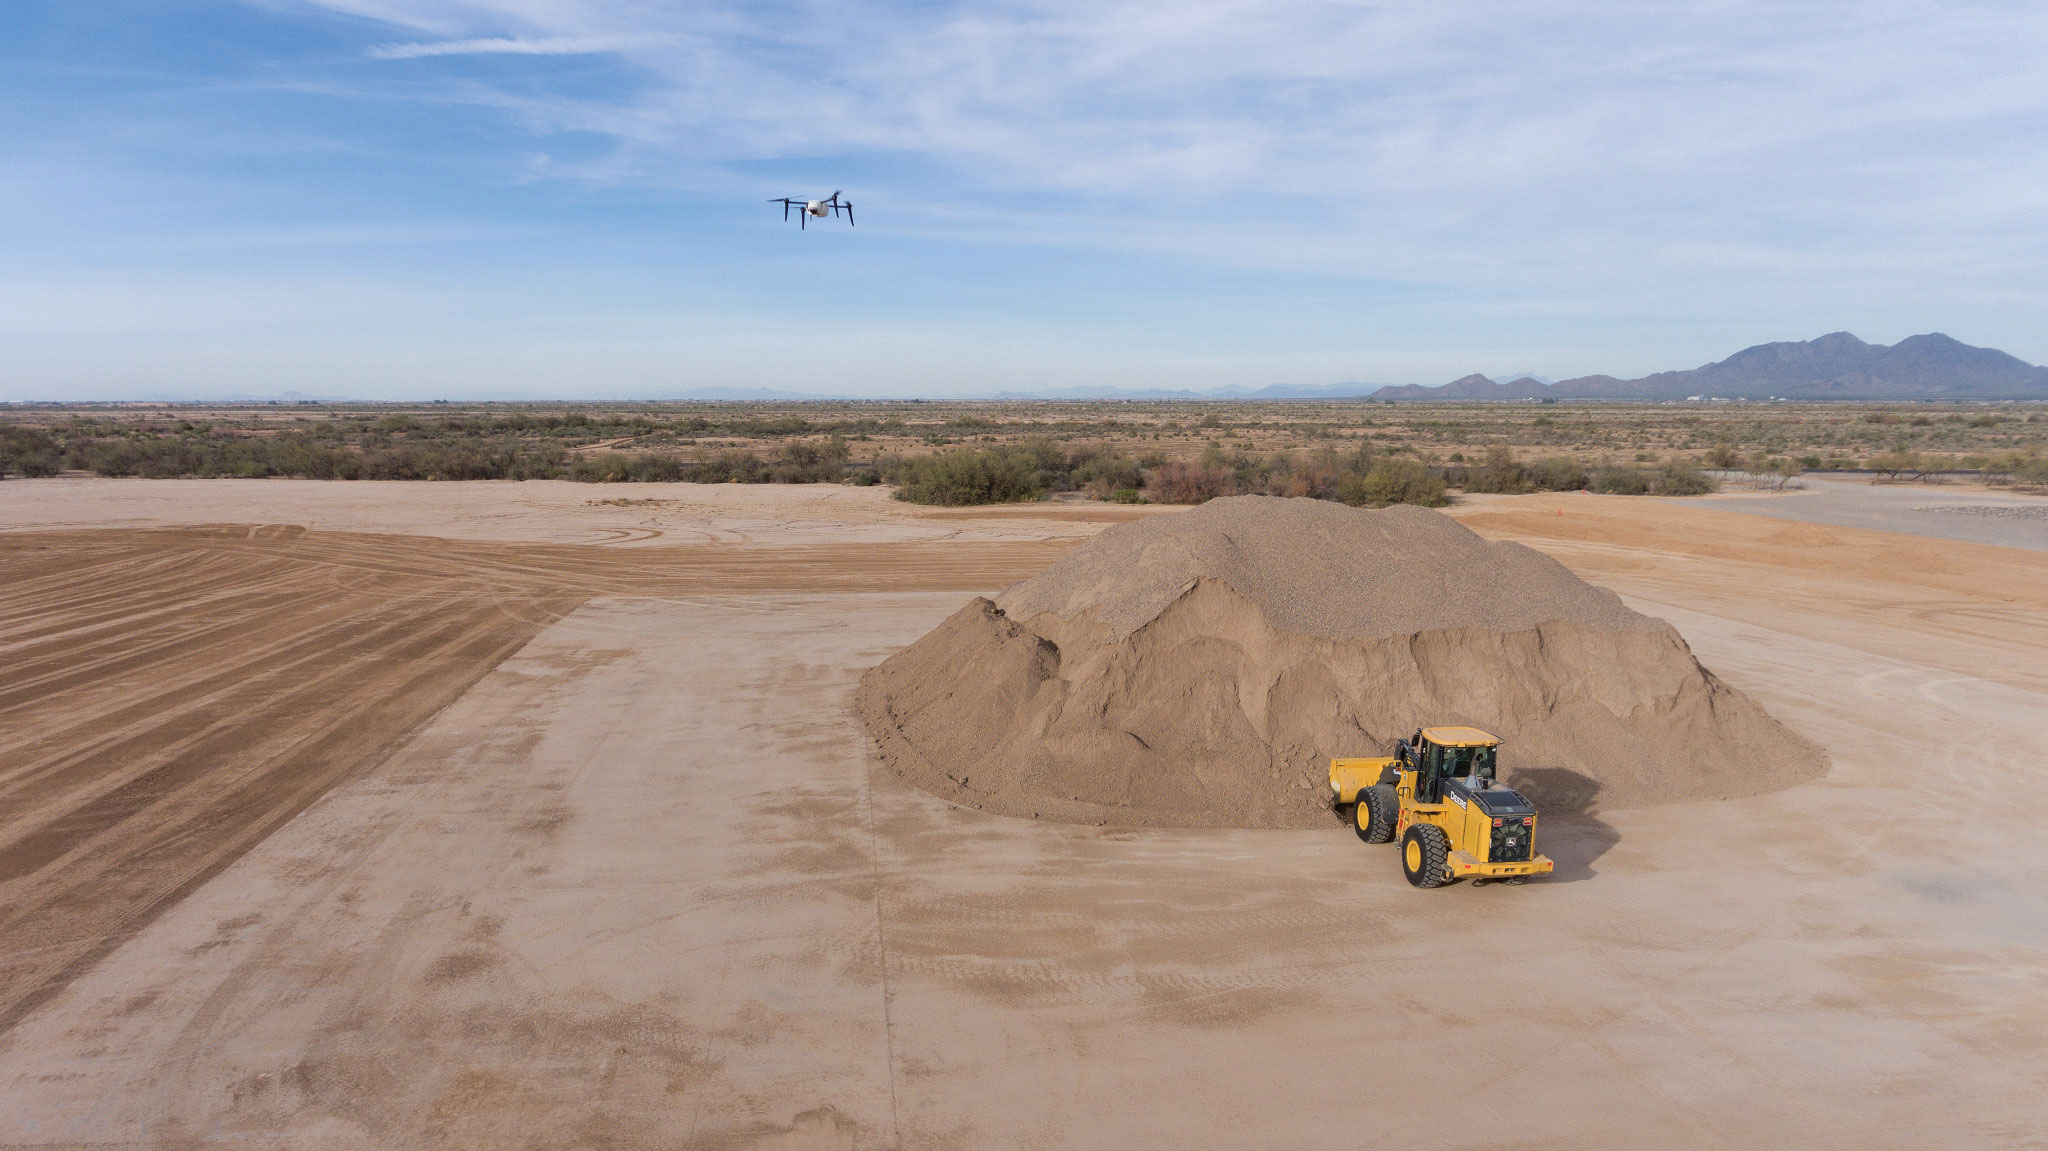 drone surveying materials